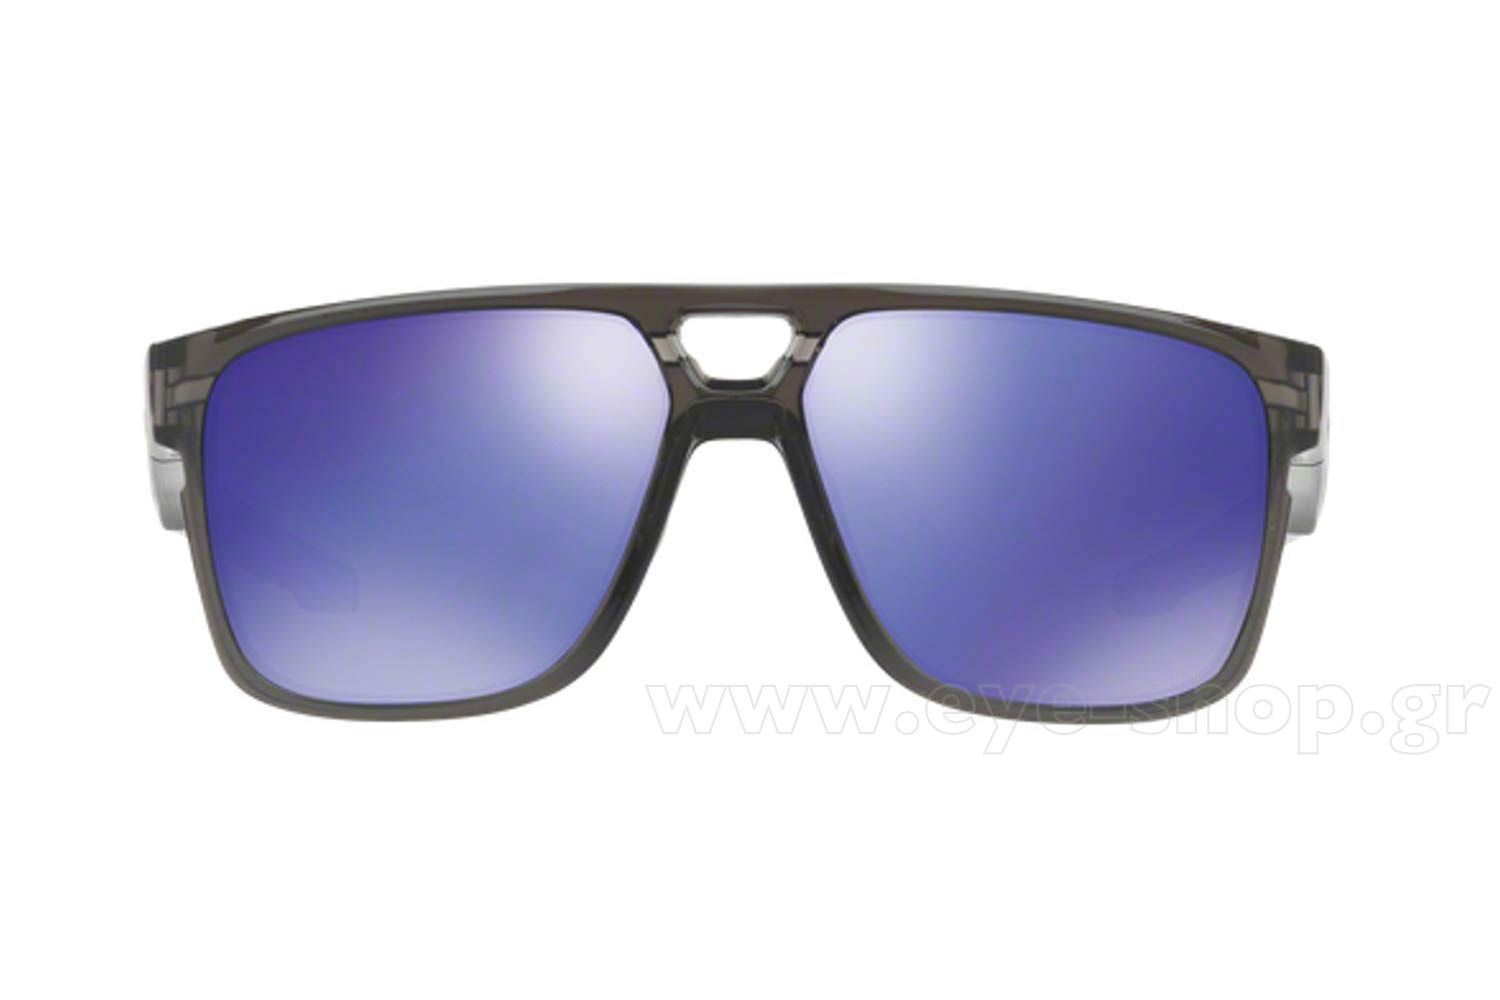 68ef7d0989a OAKLEY CROSSRANGE PATCH 938 02 GREY SMOKE VI 60